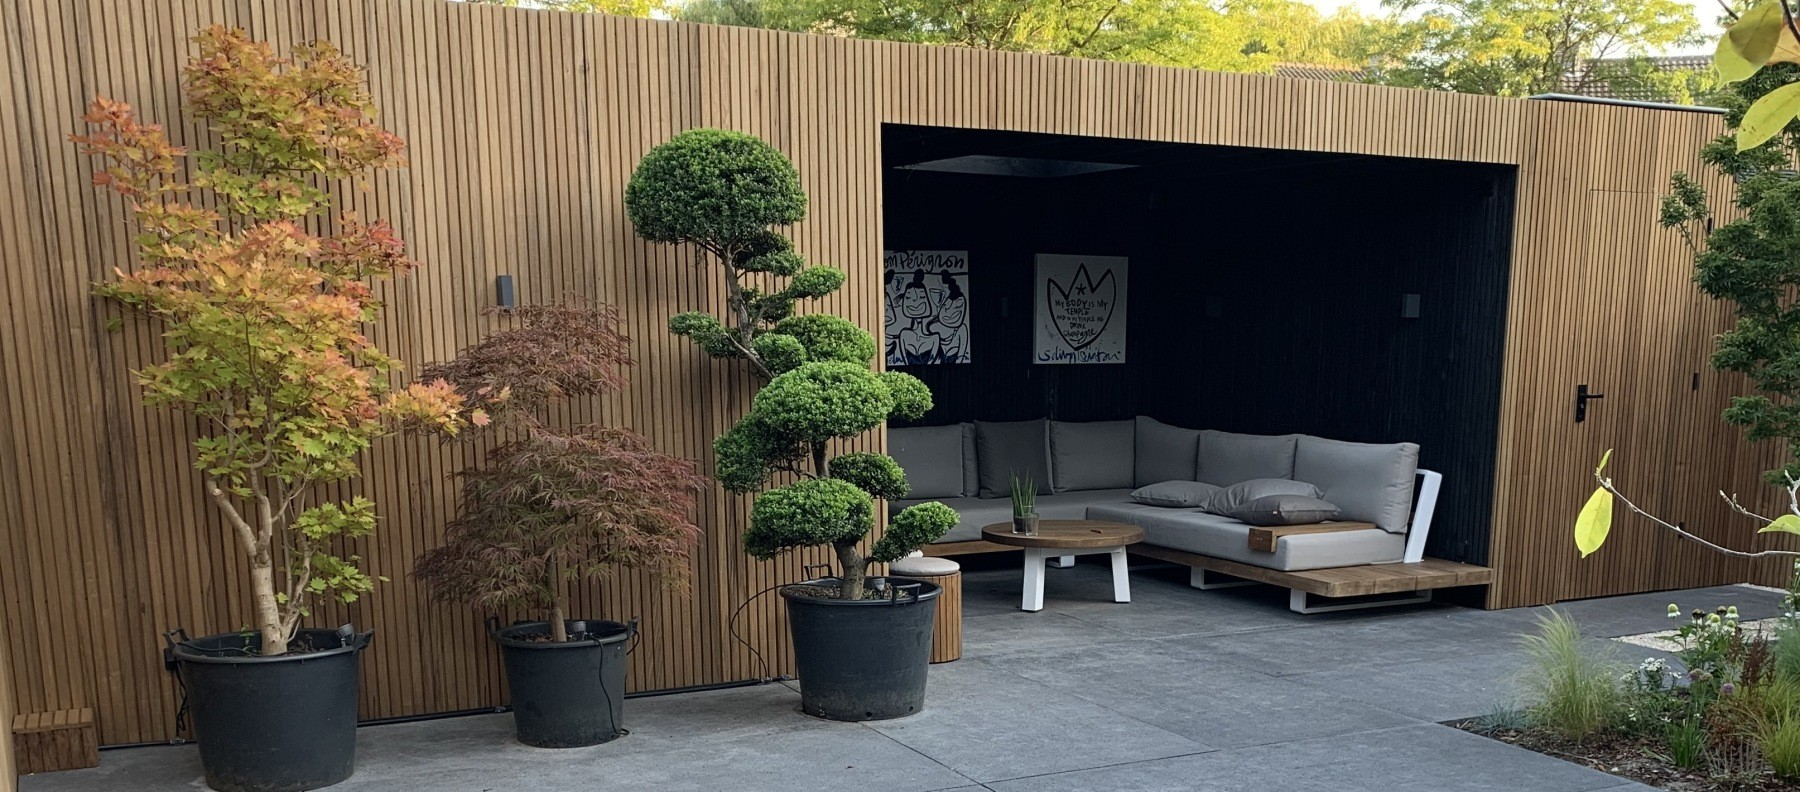 Blog Inspiratie: Thermohout in je tuin